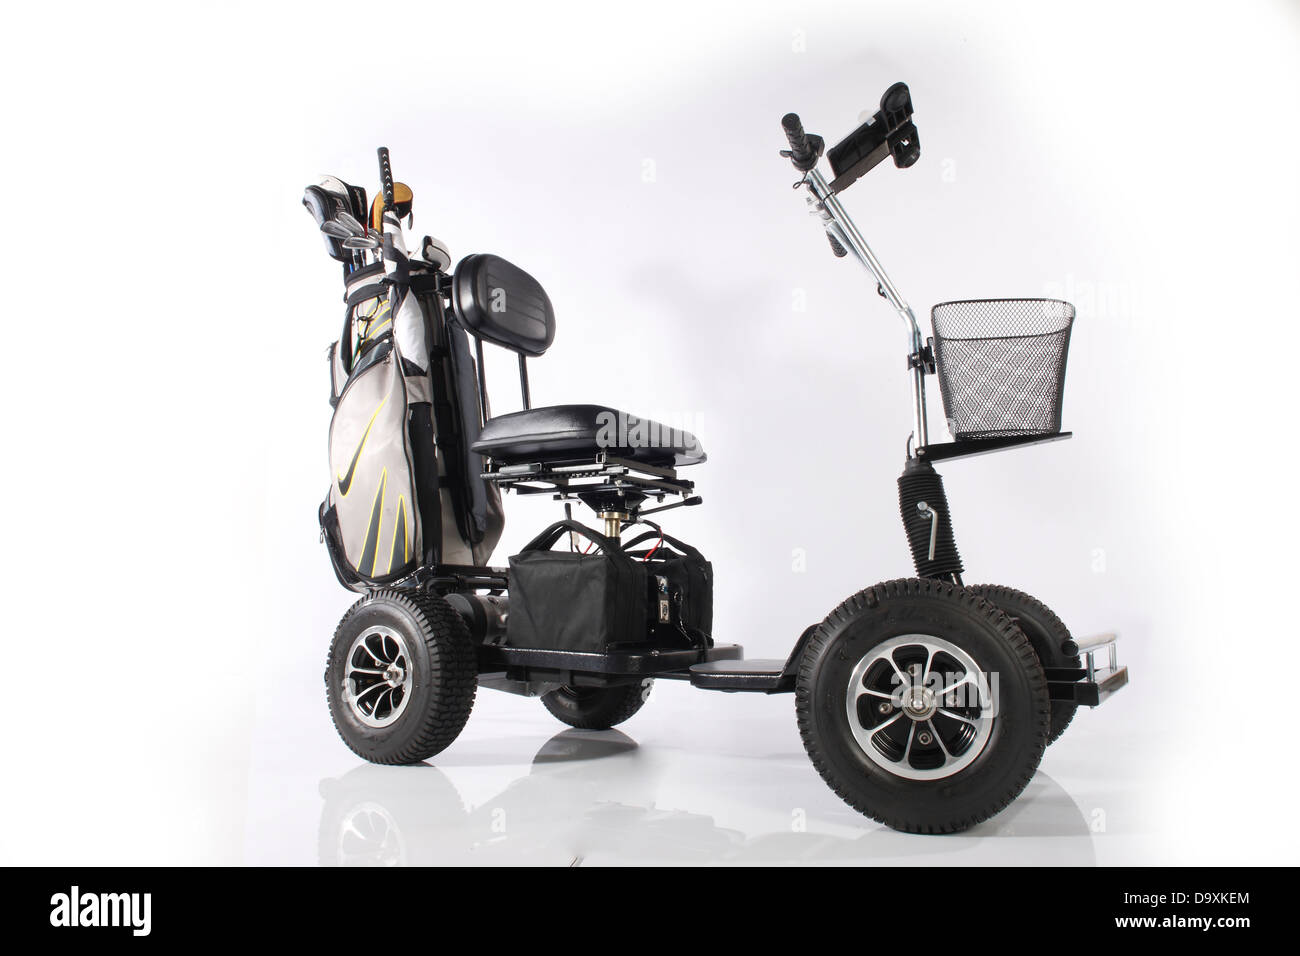 Golf Buggy electric - Stock Image